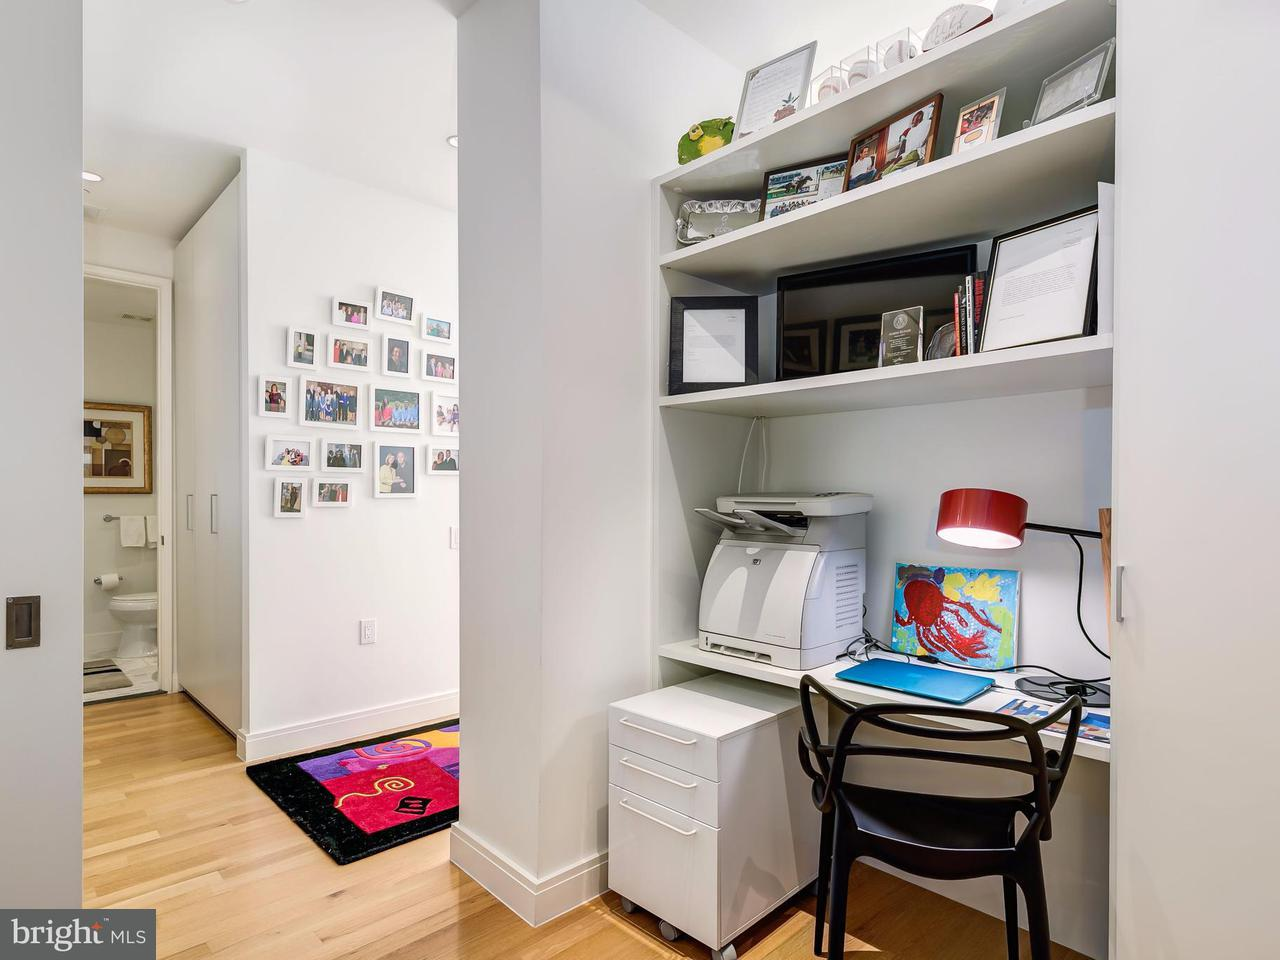 Additional photo for property listing at 1177 22nd St NW #4e  Washington, District Of Columbia 20037 United States